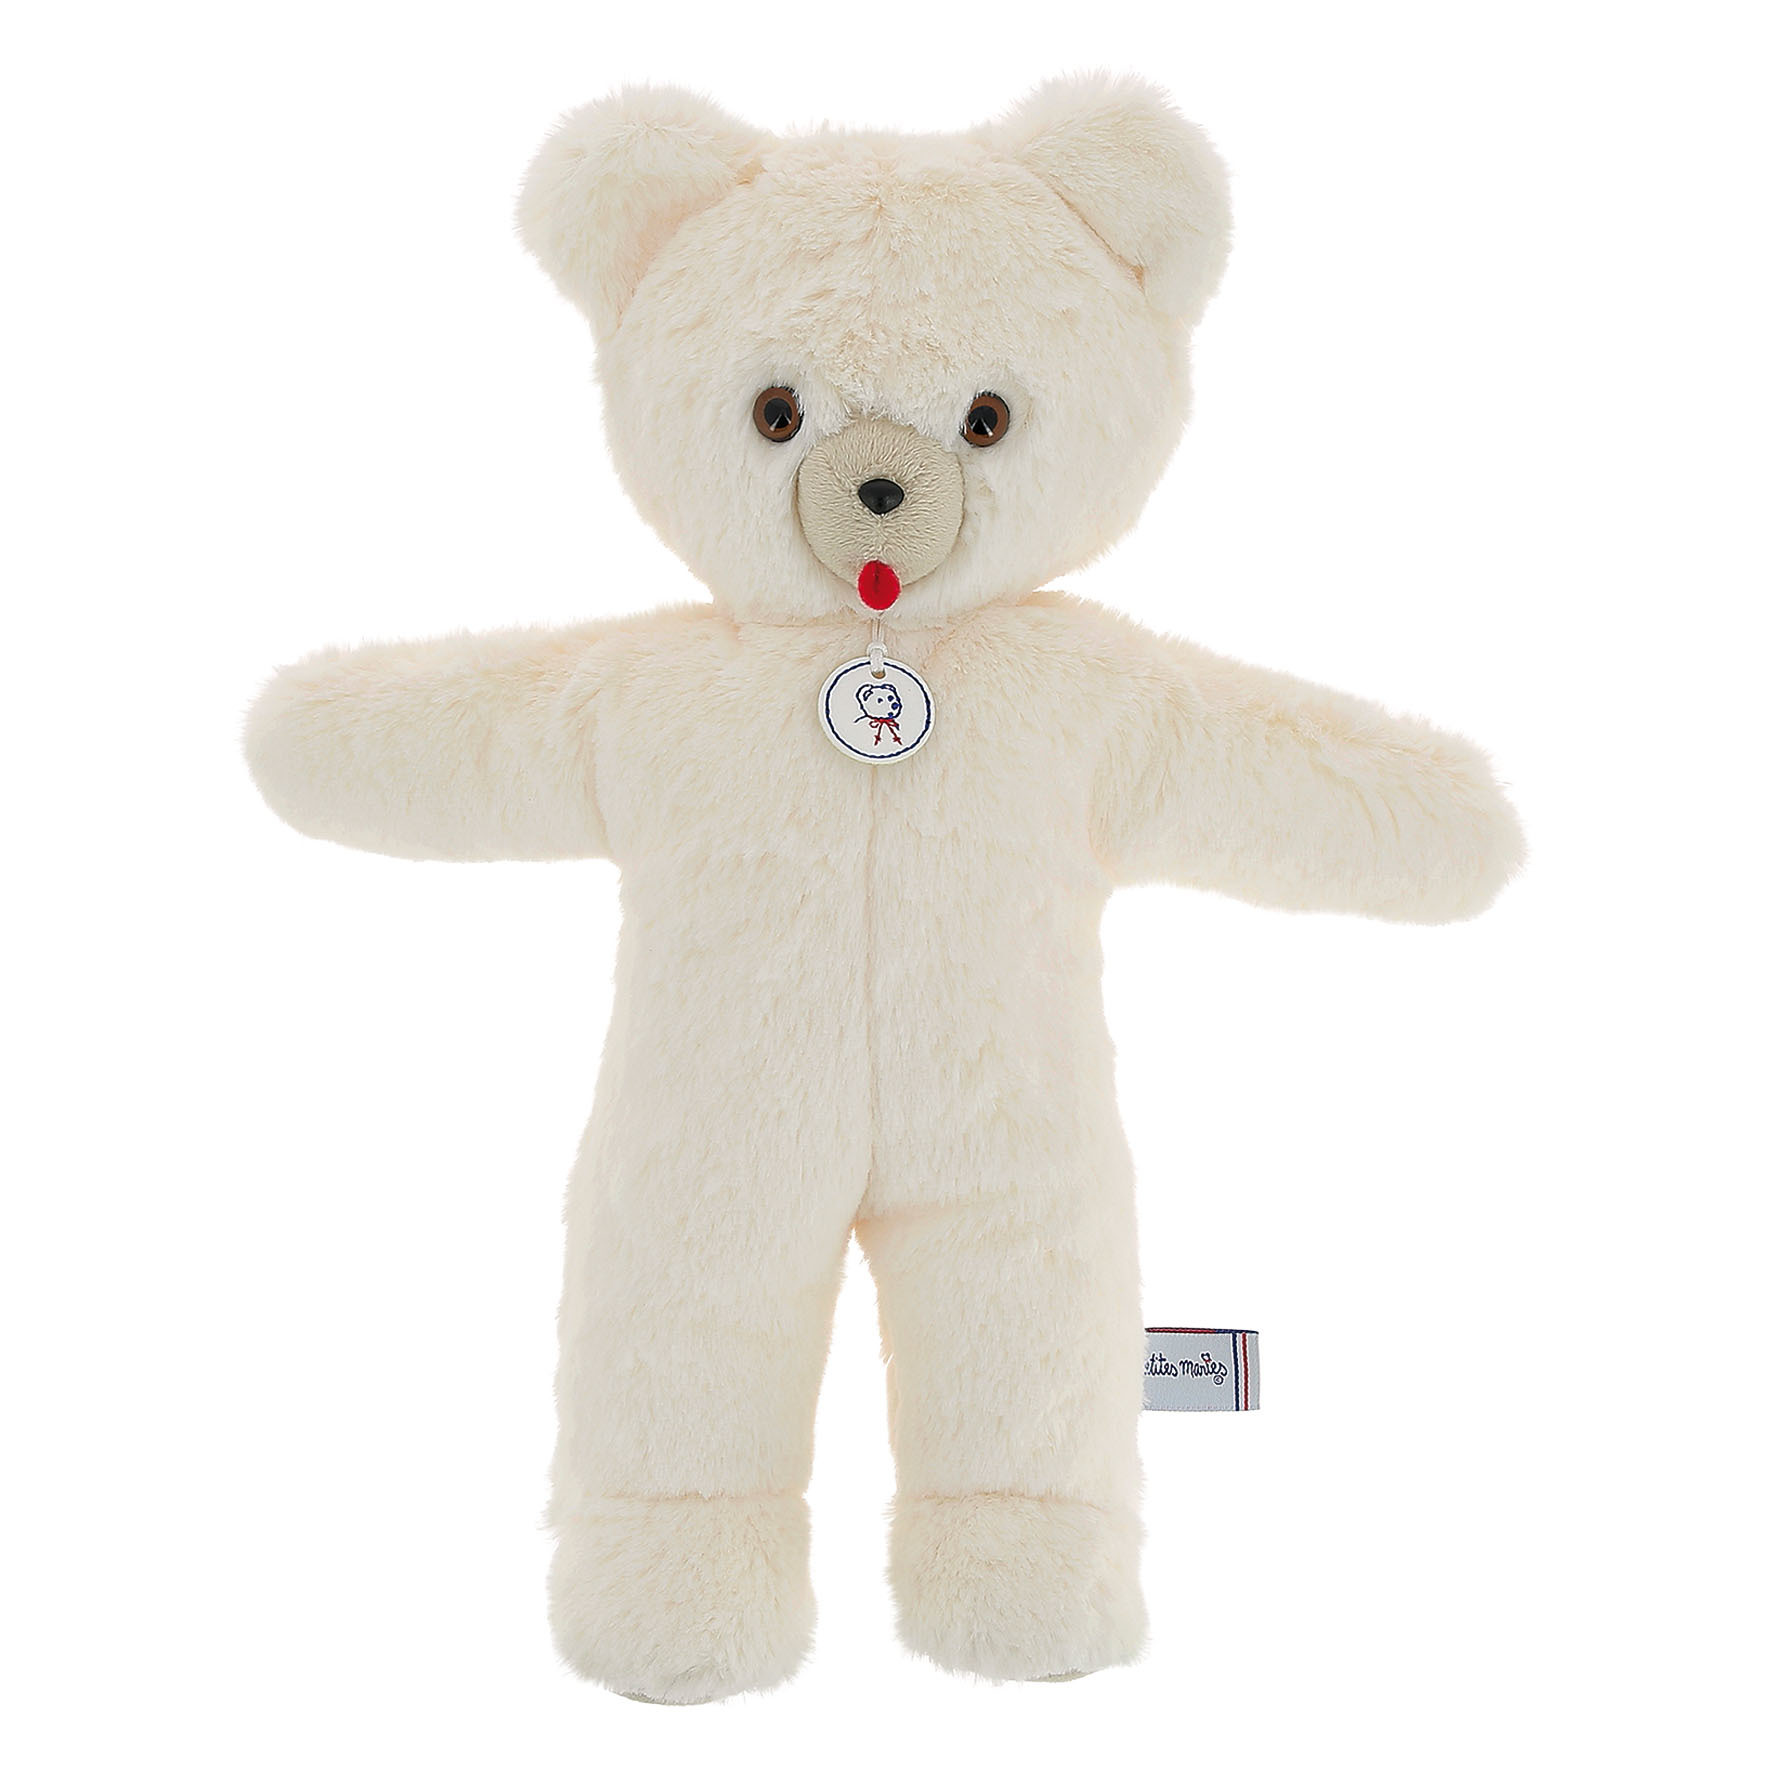 Toinou - ours 33 cm - 22-1294-13